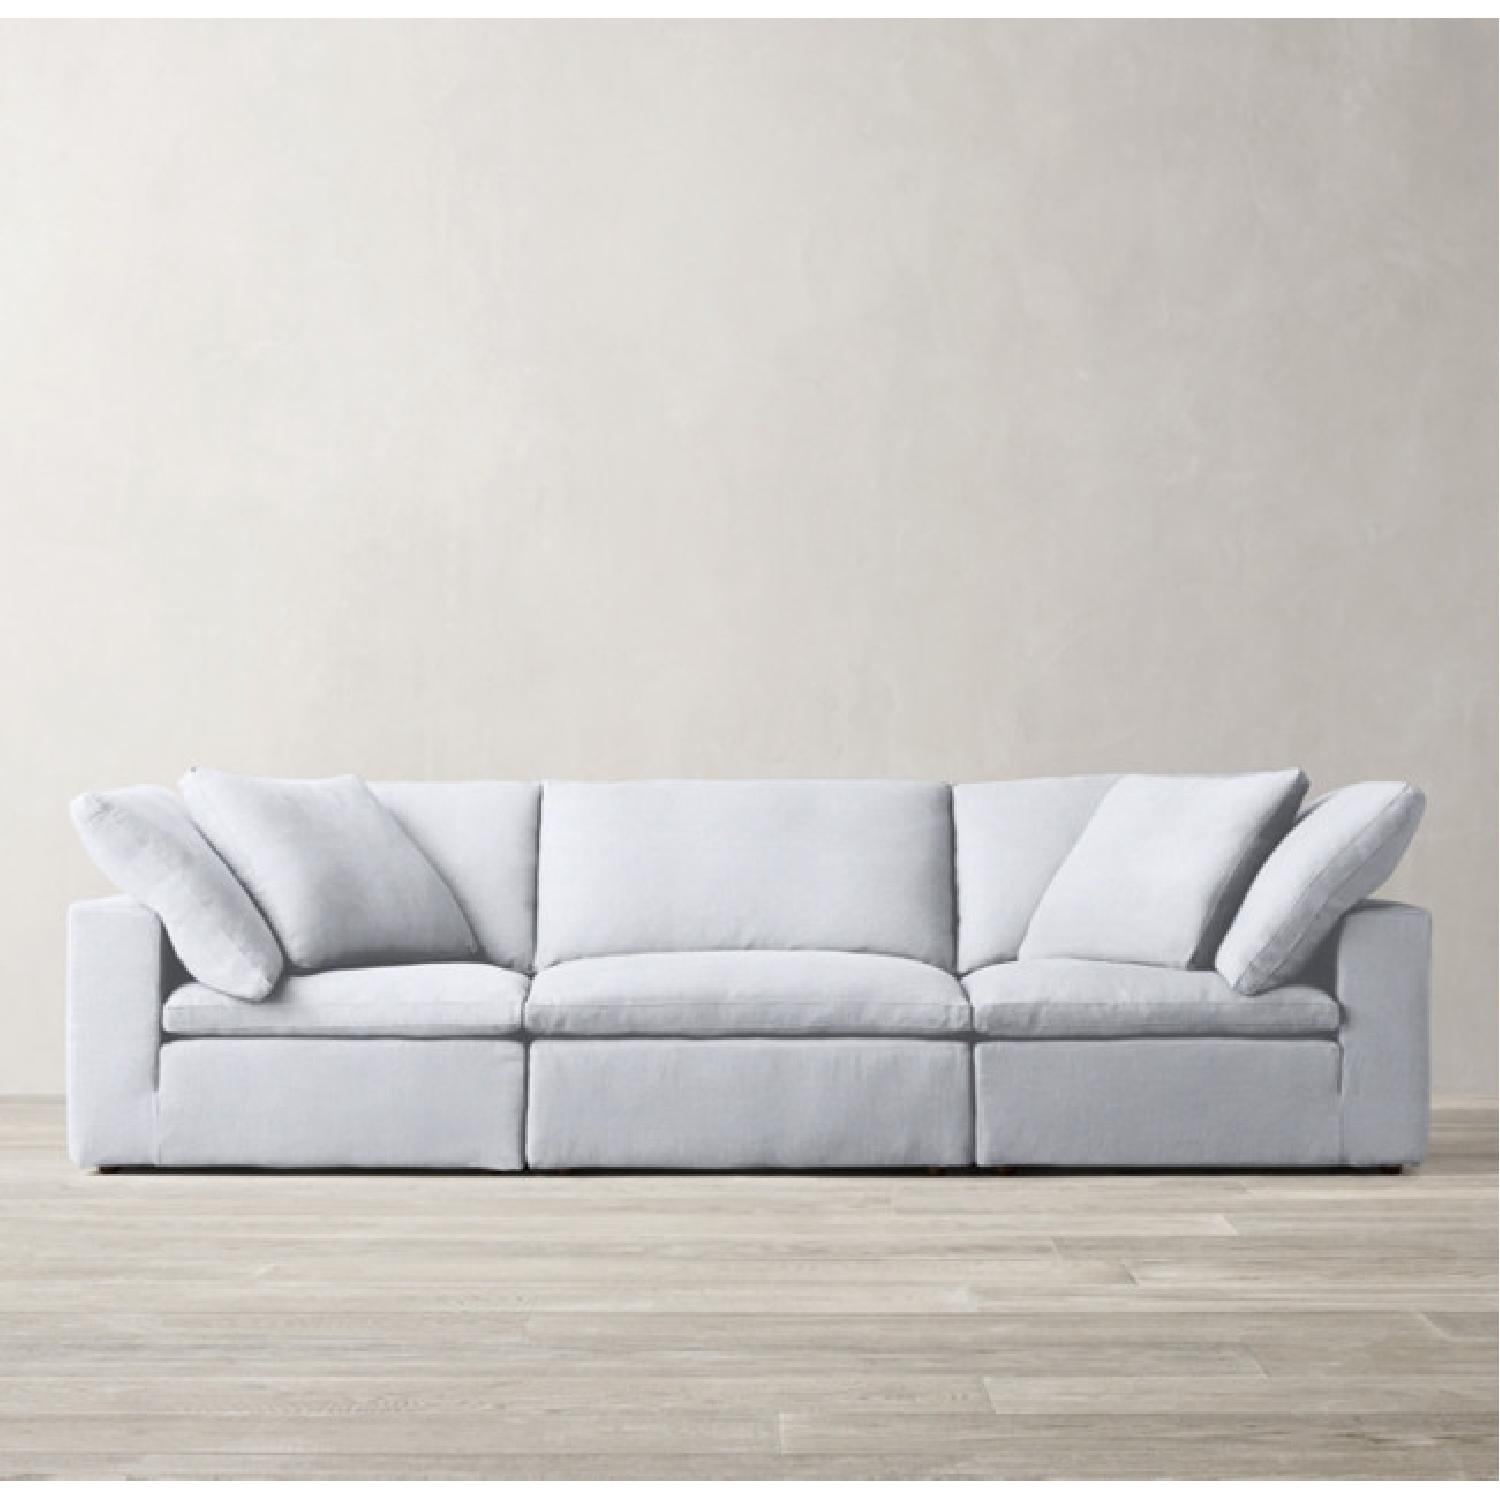 Restoration Hardware Cloud Couch - image-4